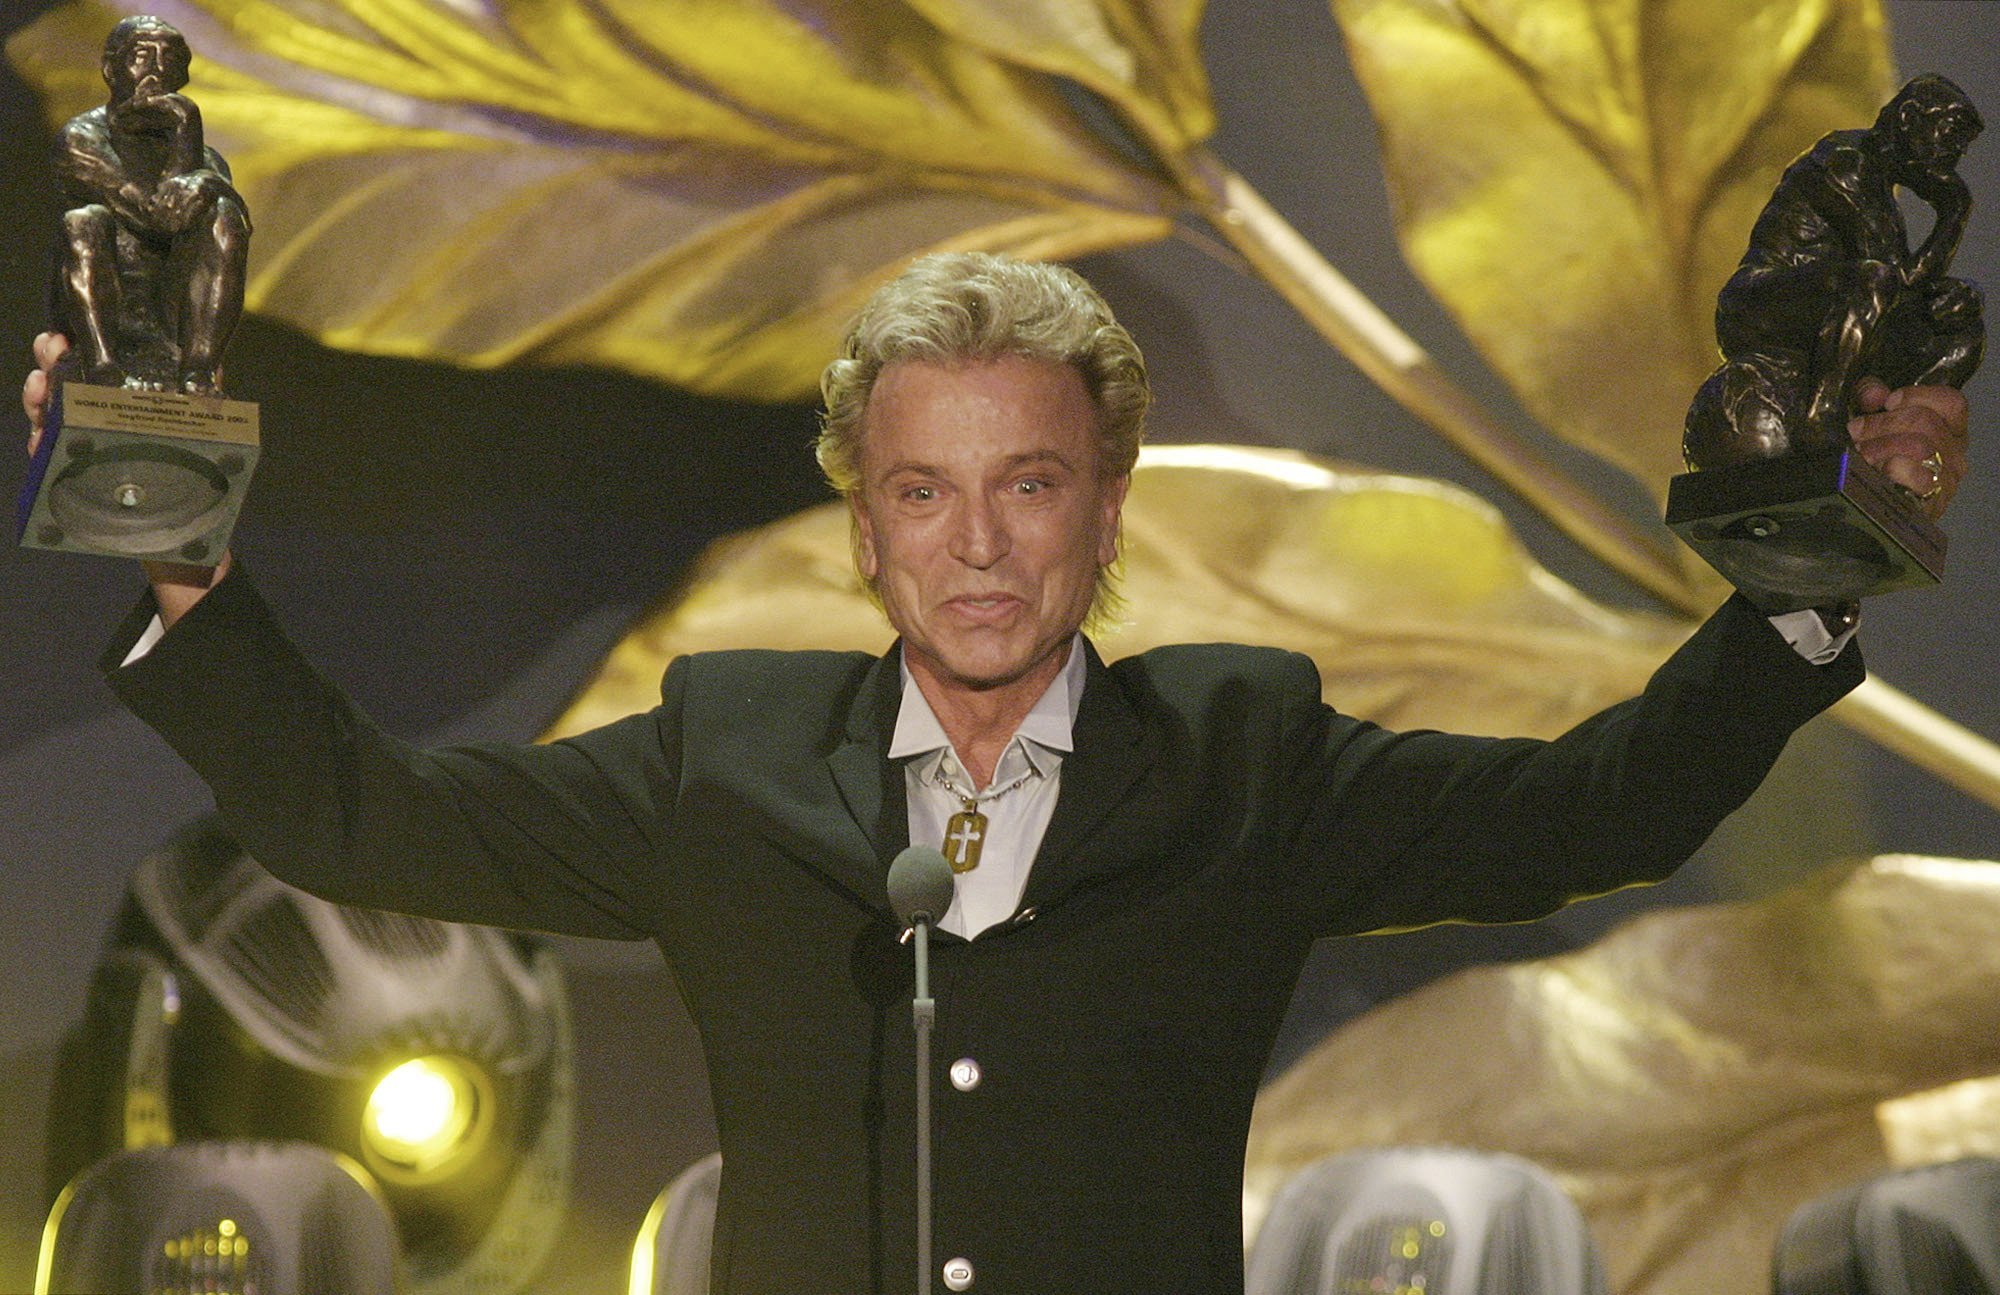 Illusionist Siegfried Fischbacher of Siegfried & Roy Dies 1